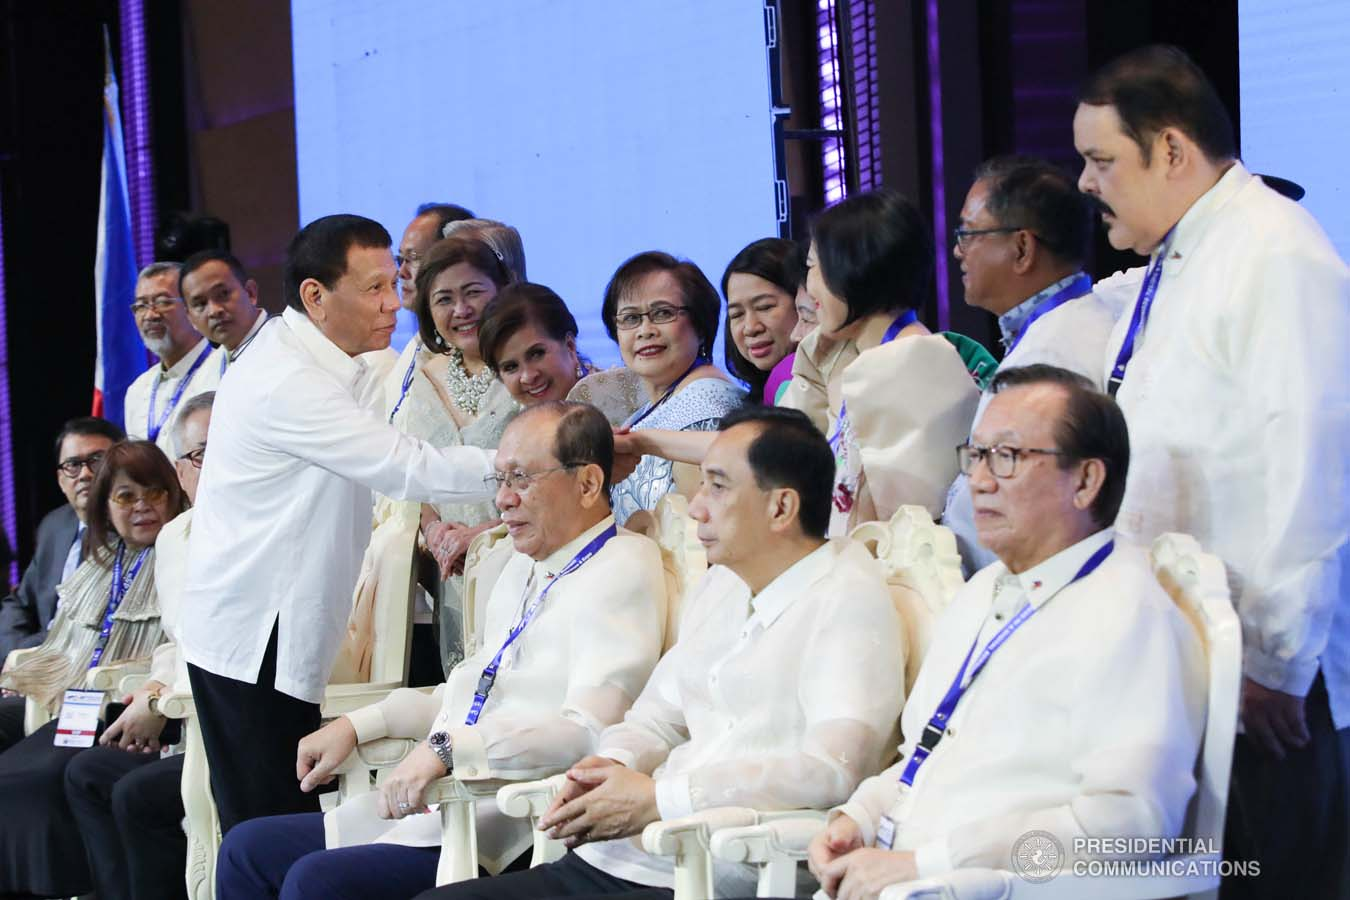 President Rodrigo Roa Duterte greets some of the guests during the 45th Philippine Business Conference and Expo at The Manila Hotel on October 17, 2019. ROBINSON NIÑAL JR./PRESIDENTIAL PHOTO